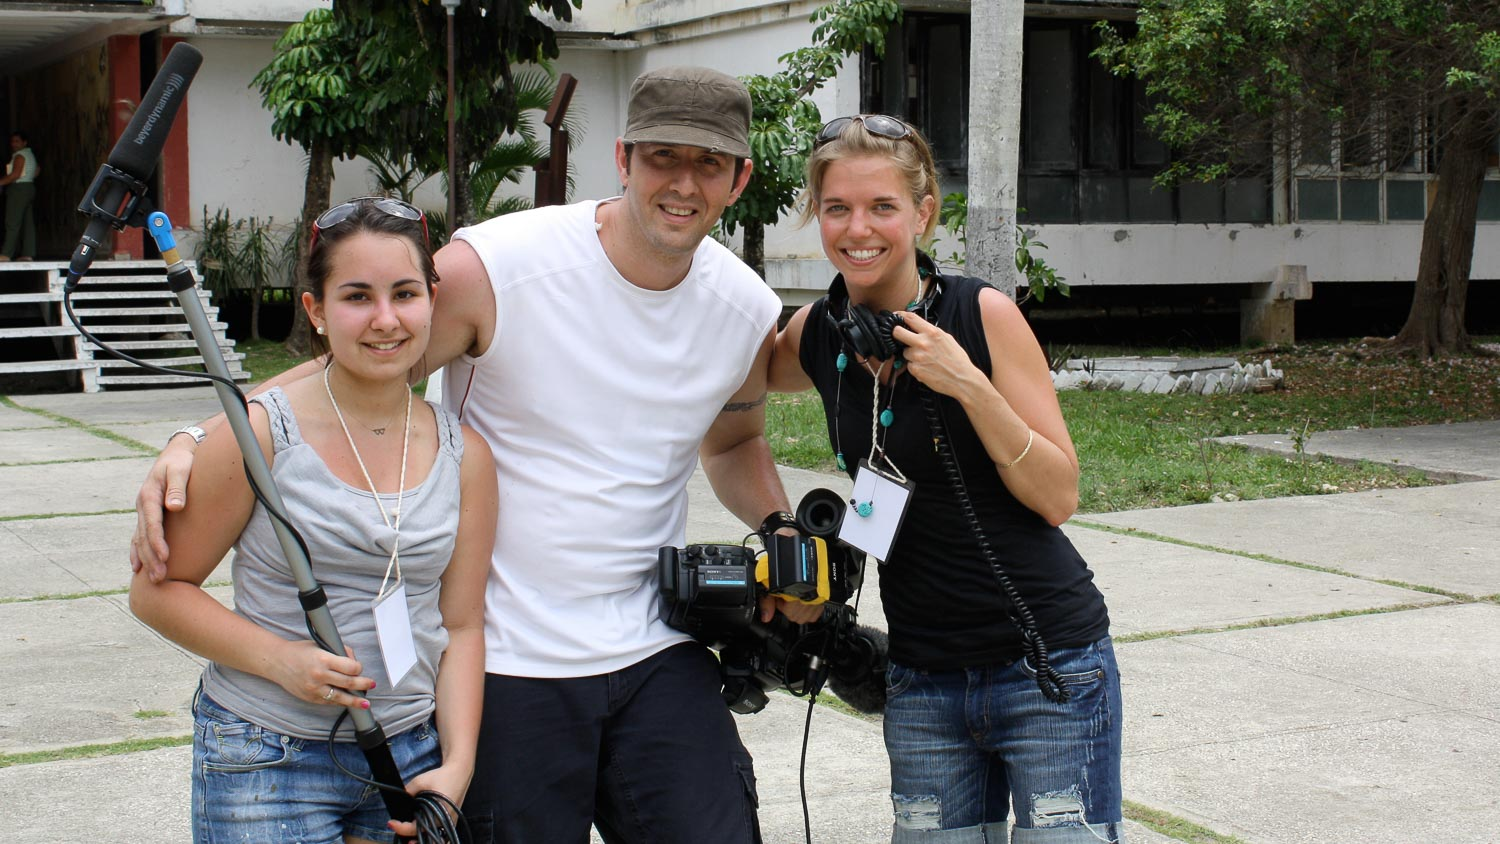 First documentary of Forge Films outside Canada, here in Holguin Cuba during the Cinco de Mayo festival